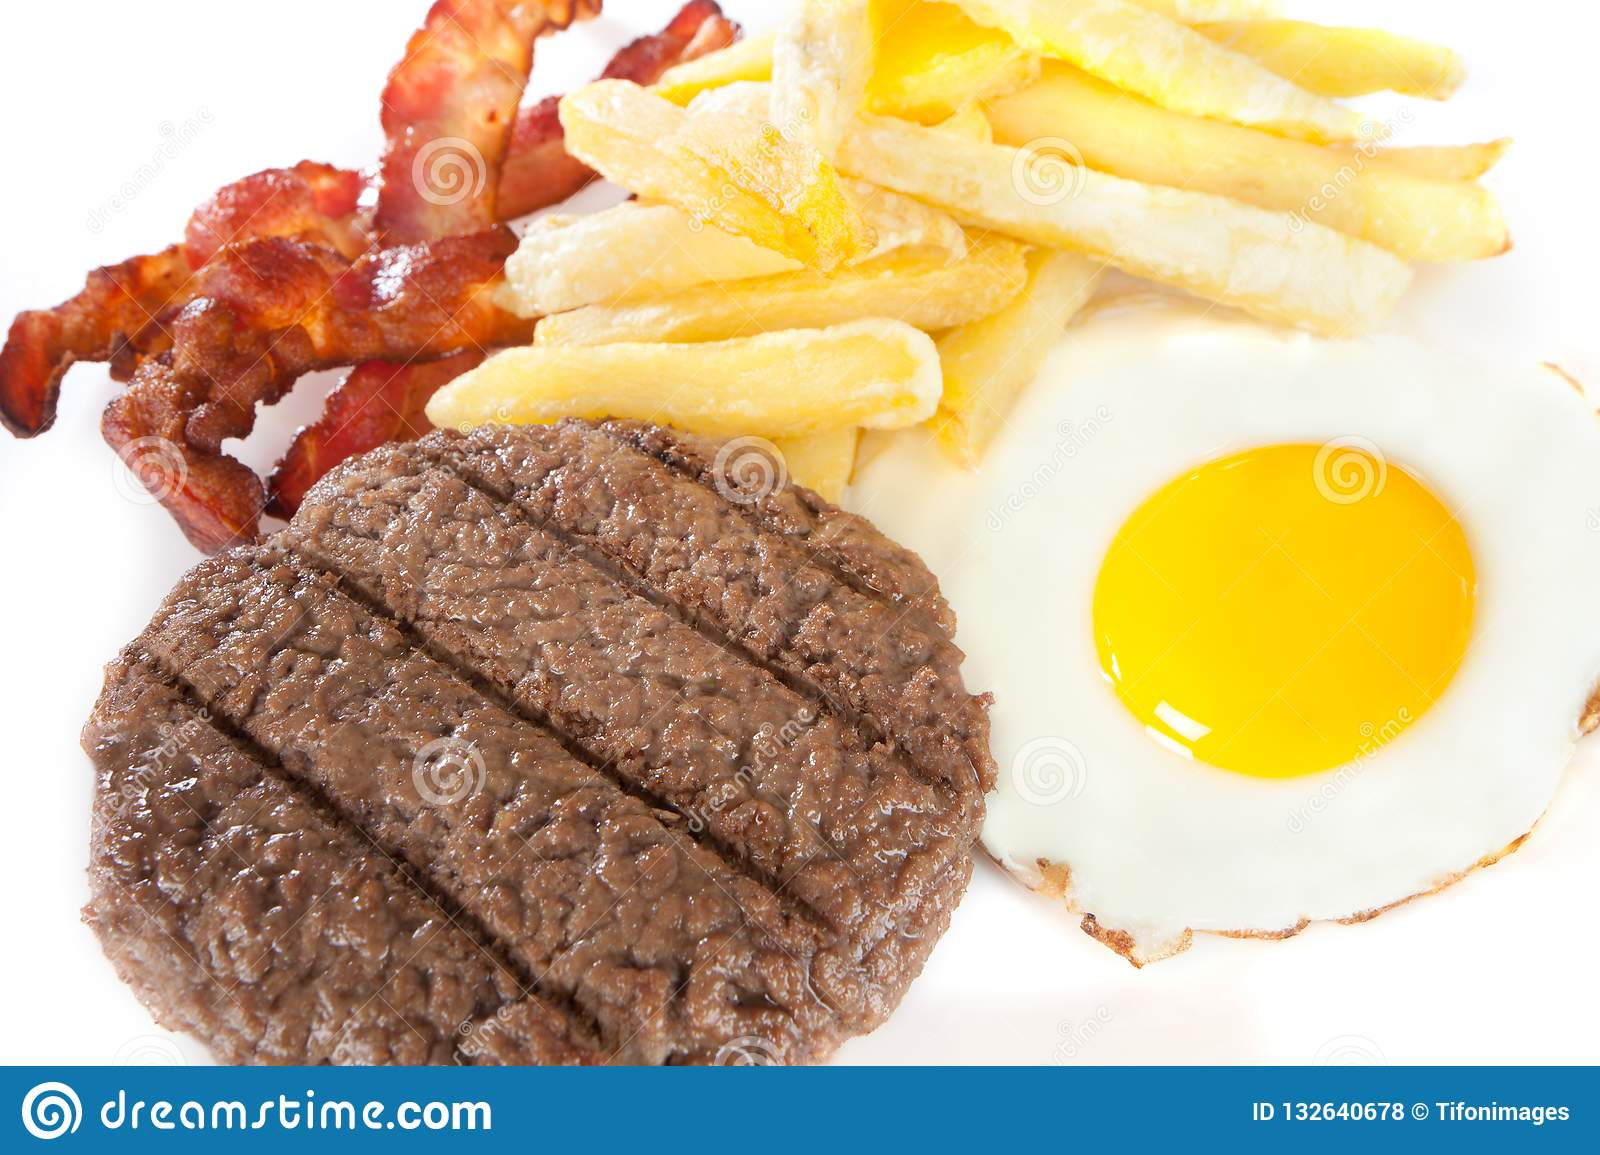 Junk food with high levels of calories and cholesterol